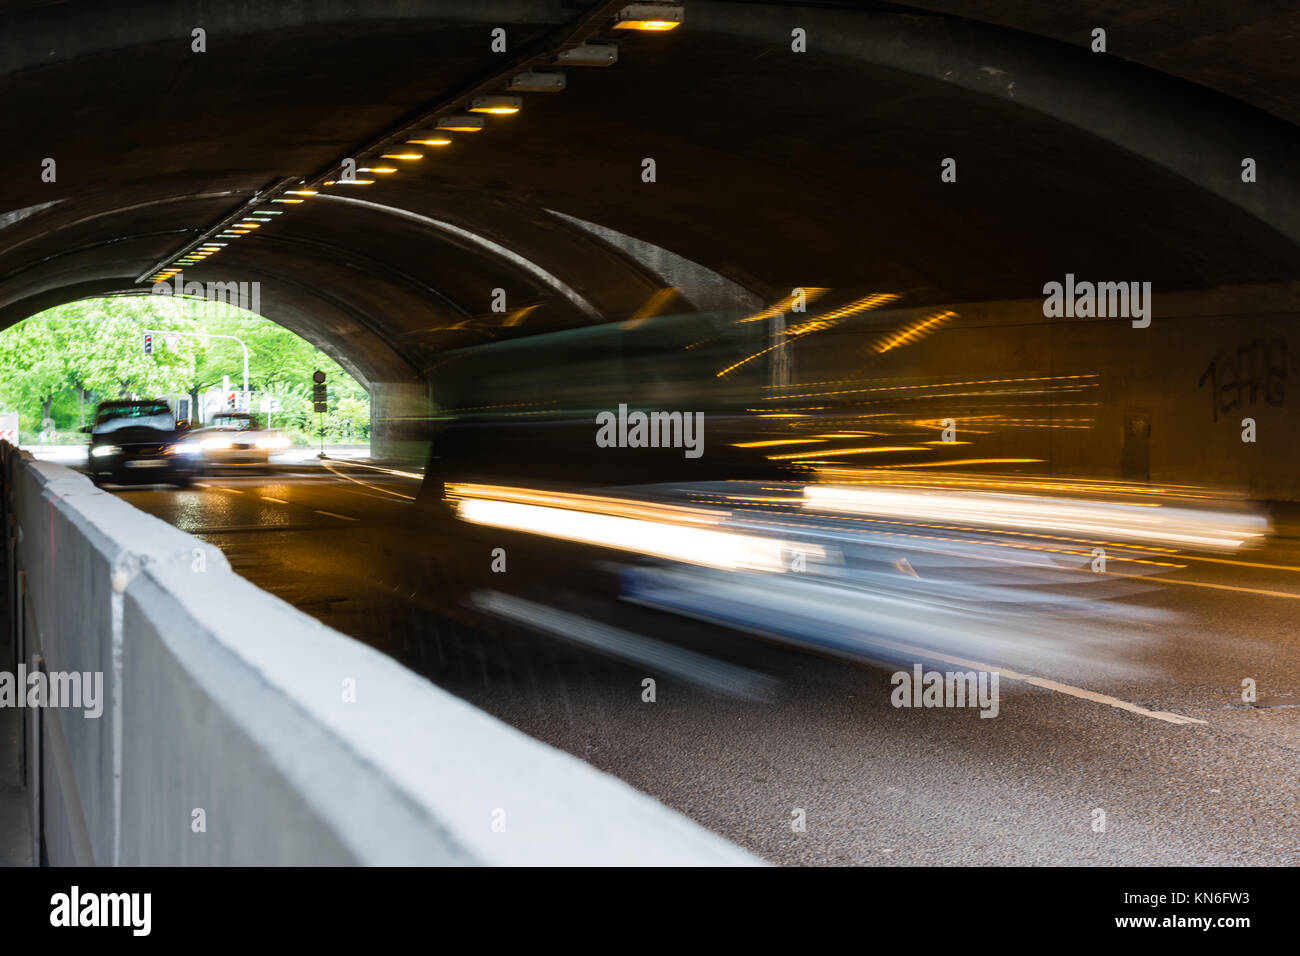 Cars Headlights Blurring through Underpass Daytime Motion City Urban Transportation - Stock Image